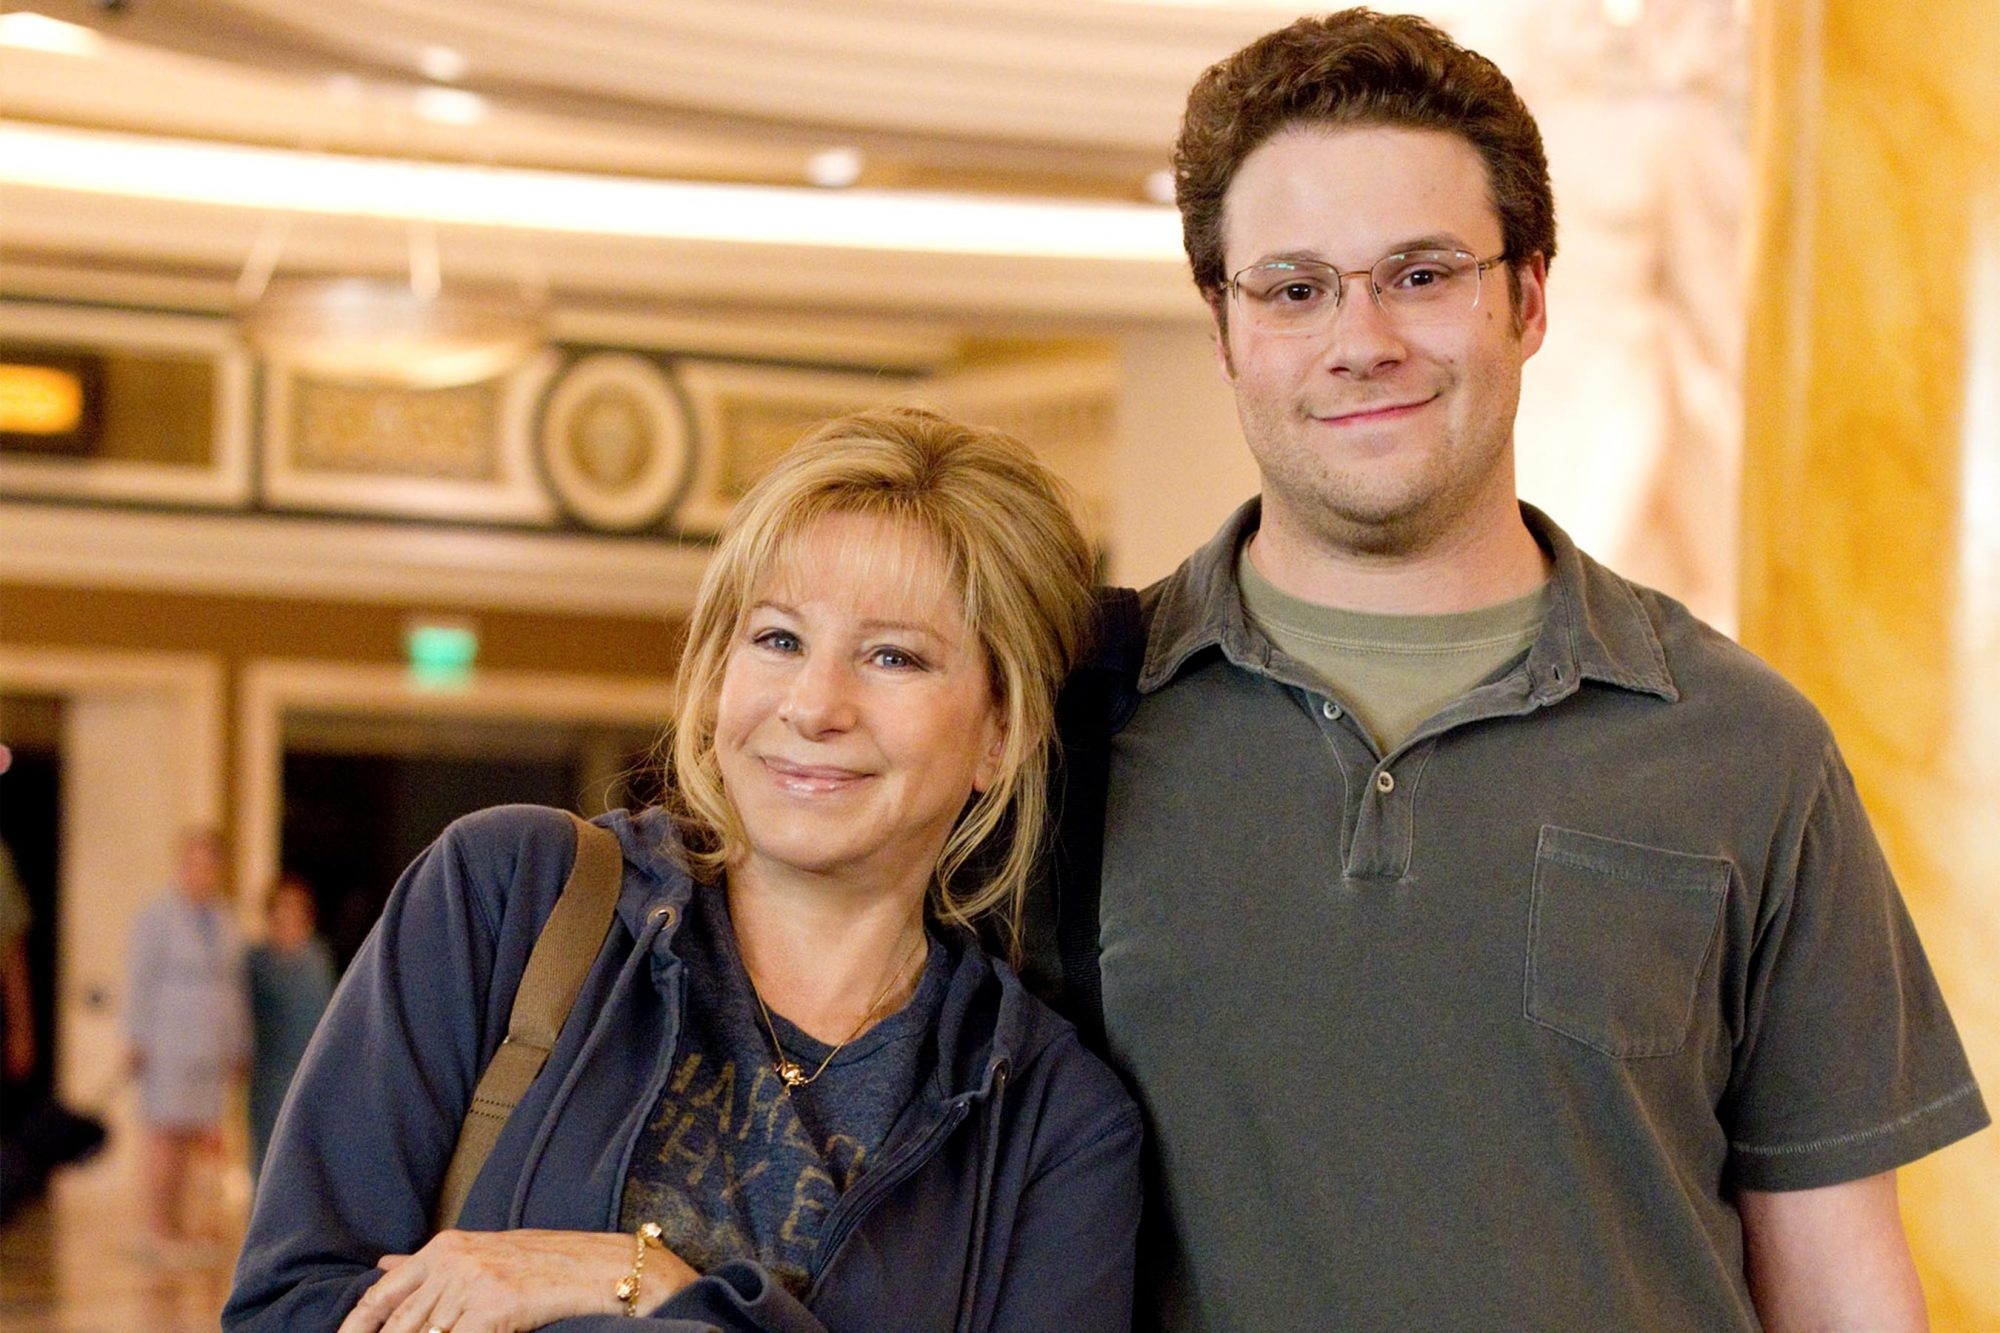 14. Seth Rogen and Barbra Streisand in The Guilt Trip (2012)